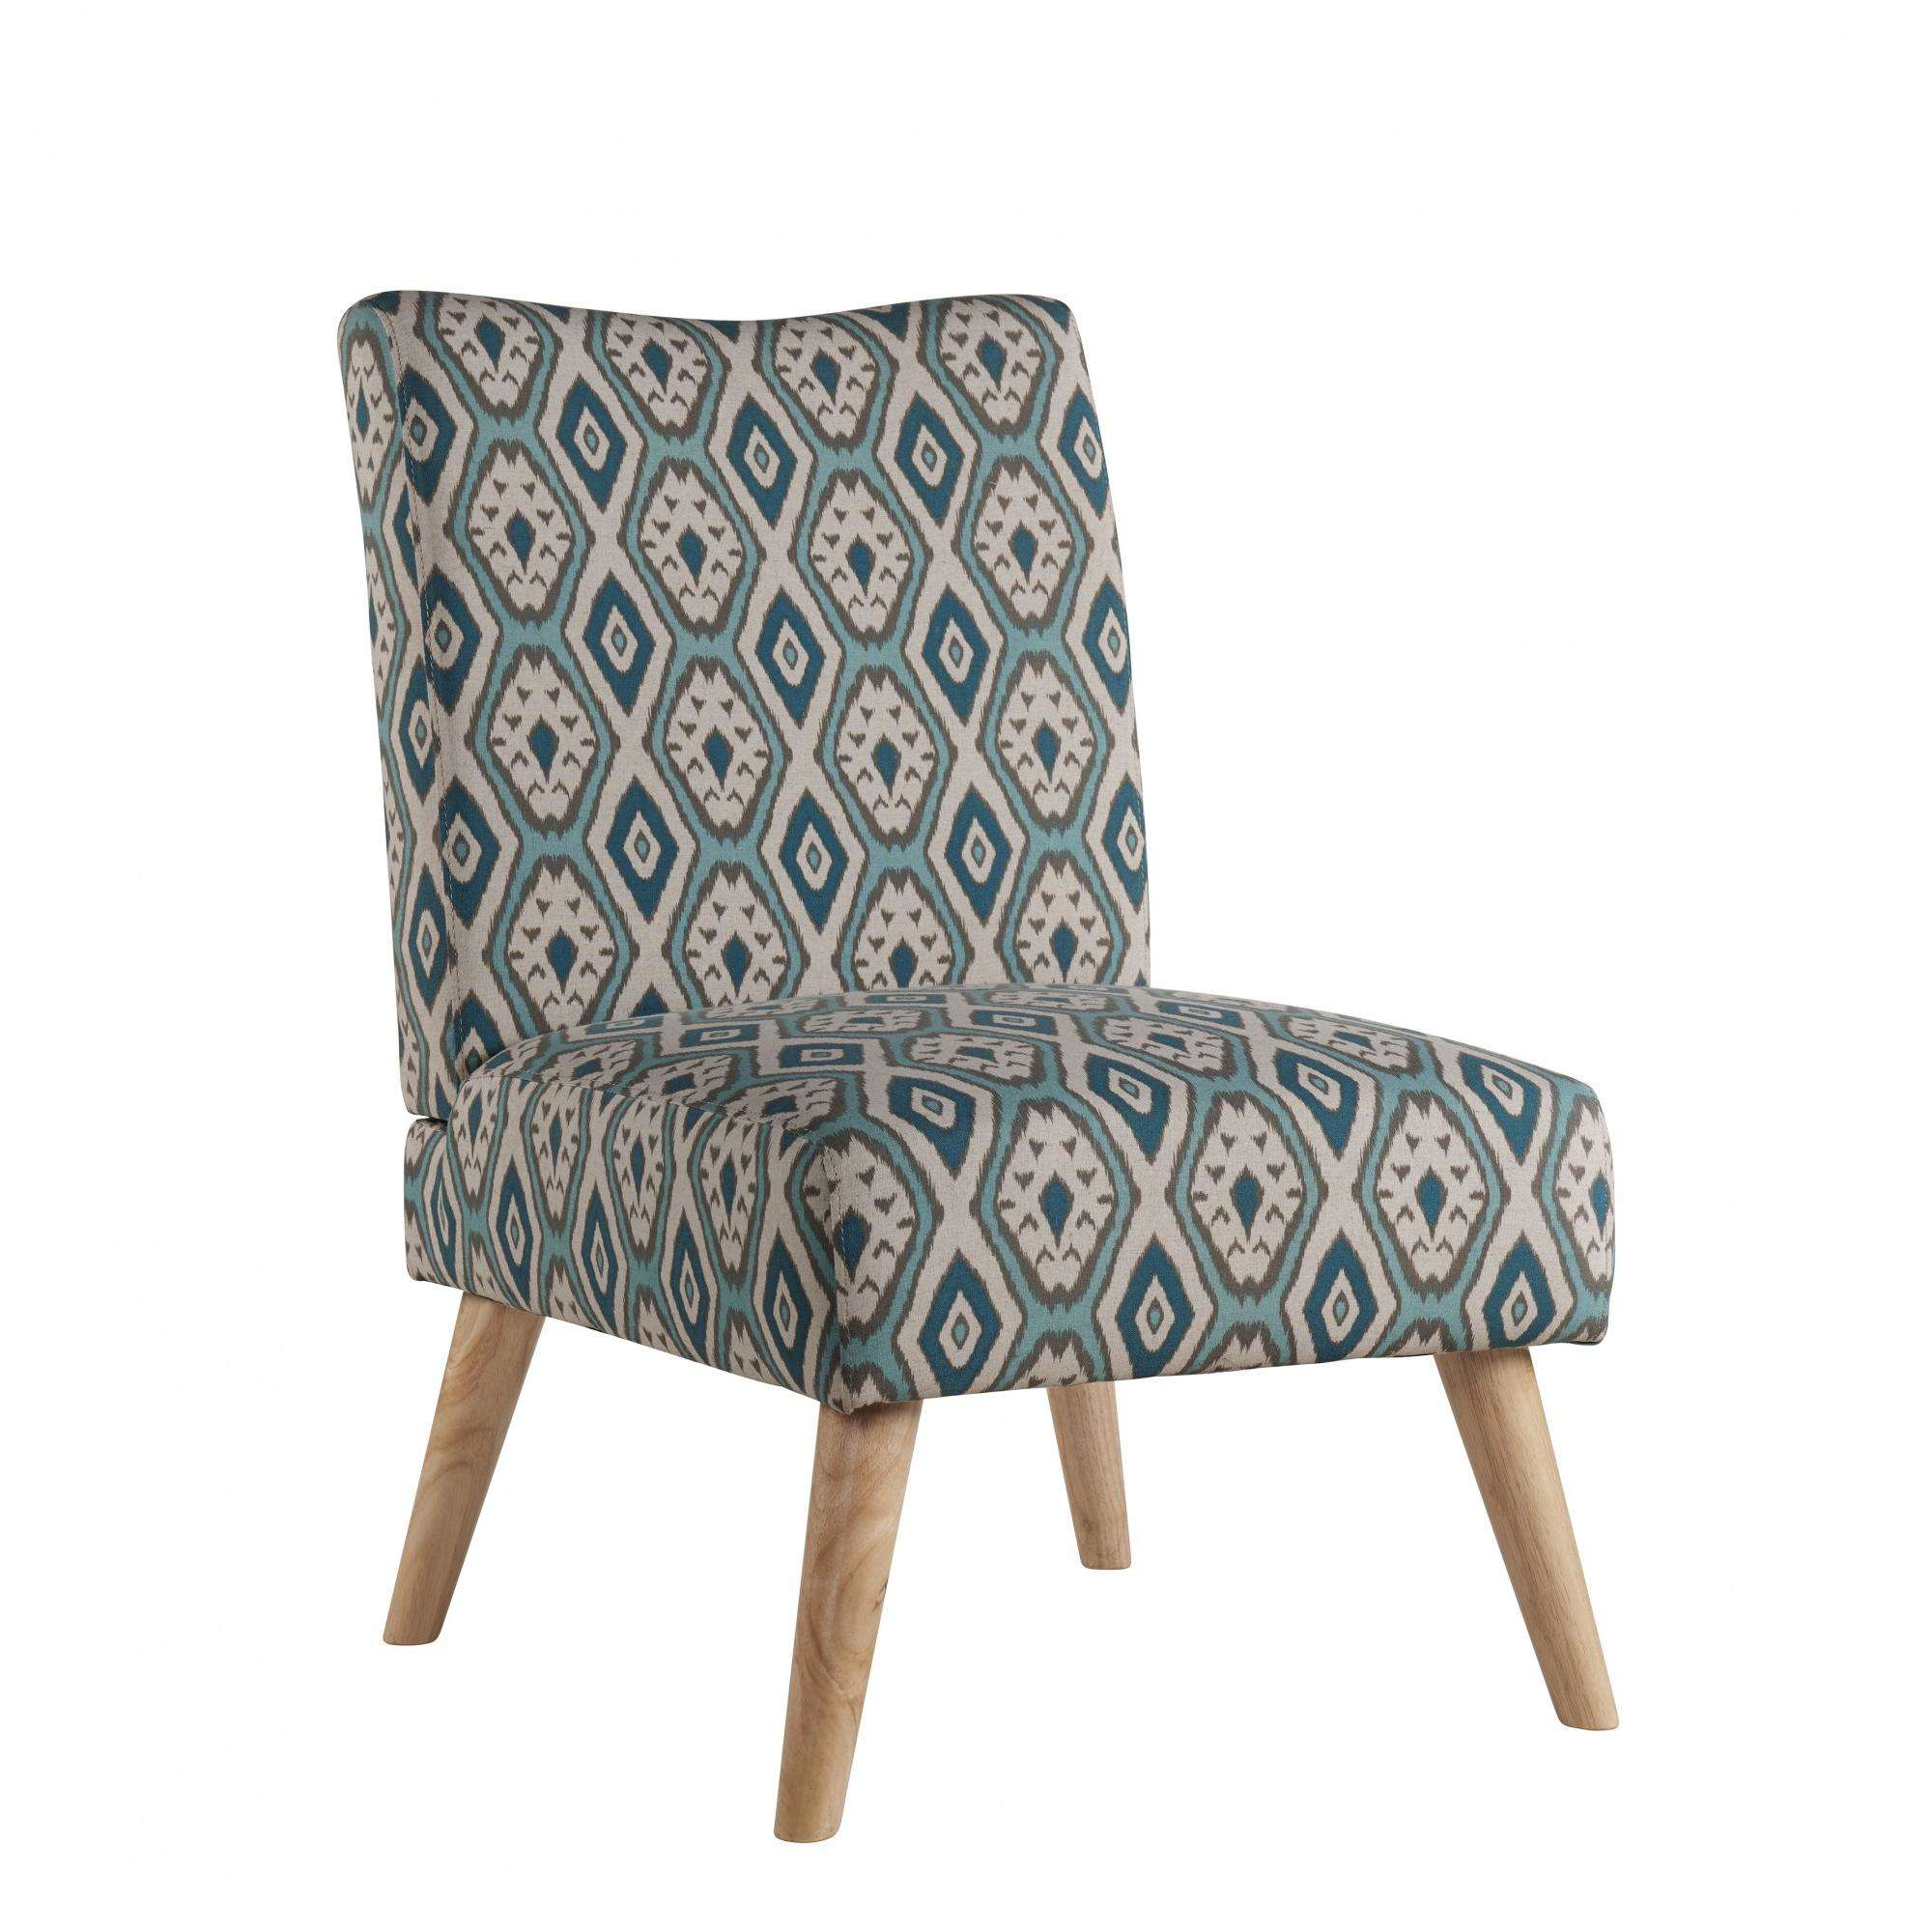 Mainstays Slipper Chair with Wood Legs Teal Geo